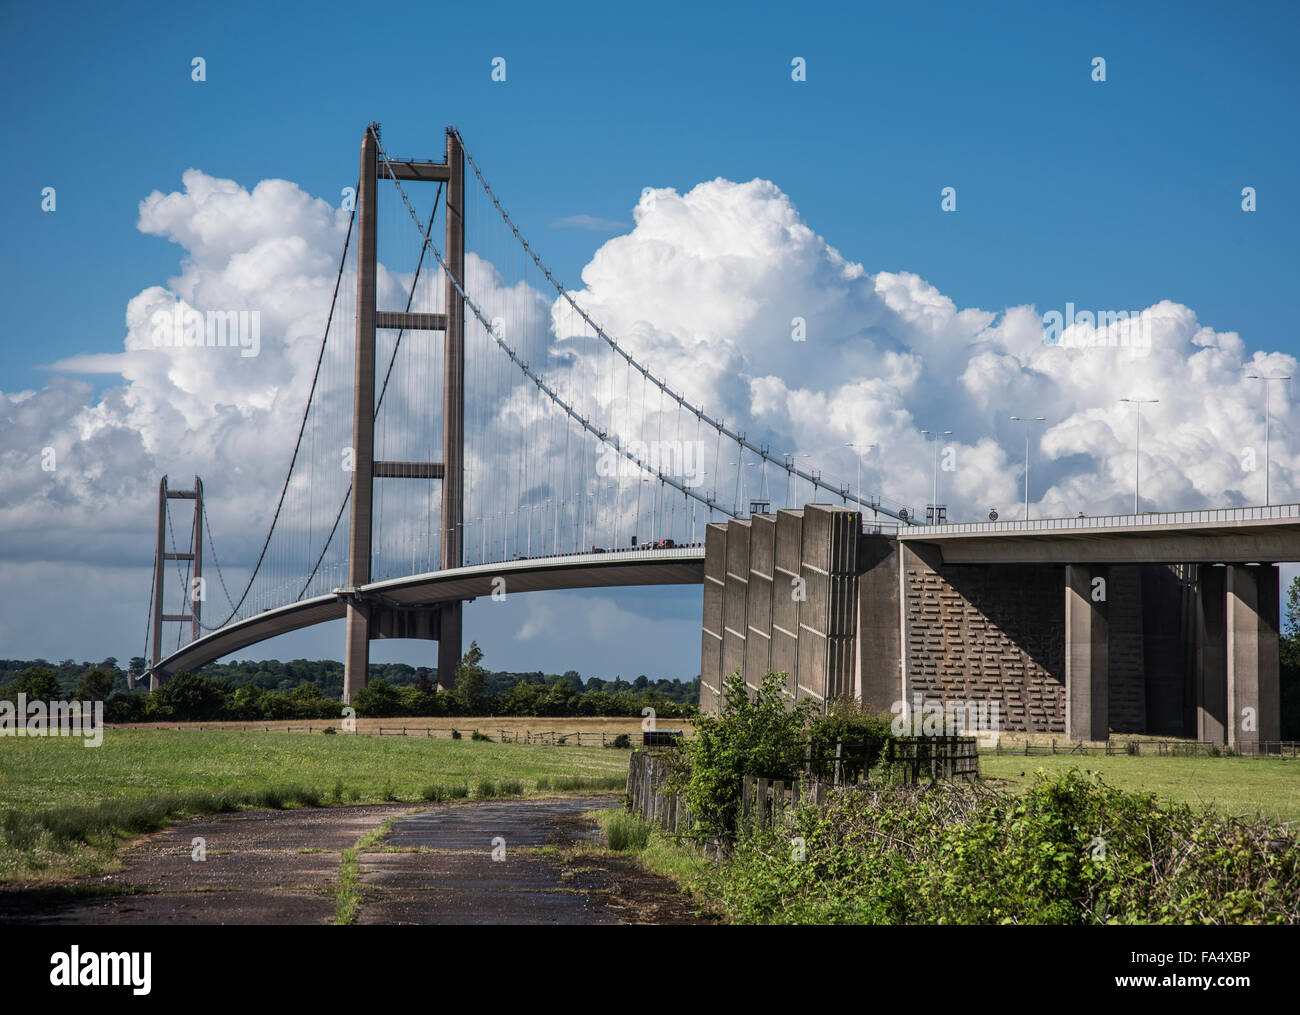 Towering cumulonimbus clouds provide a brilliant and dramatic backdrop to Humber Bridge - Stock Image